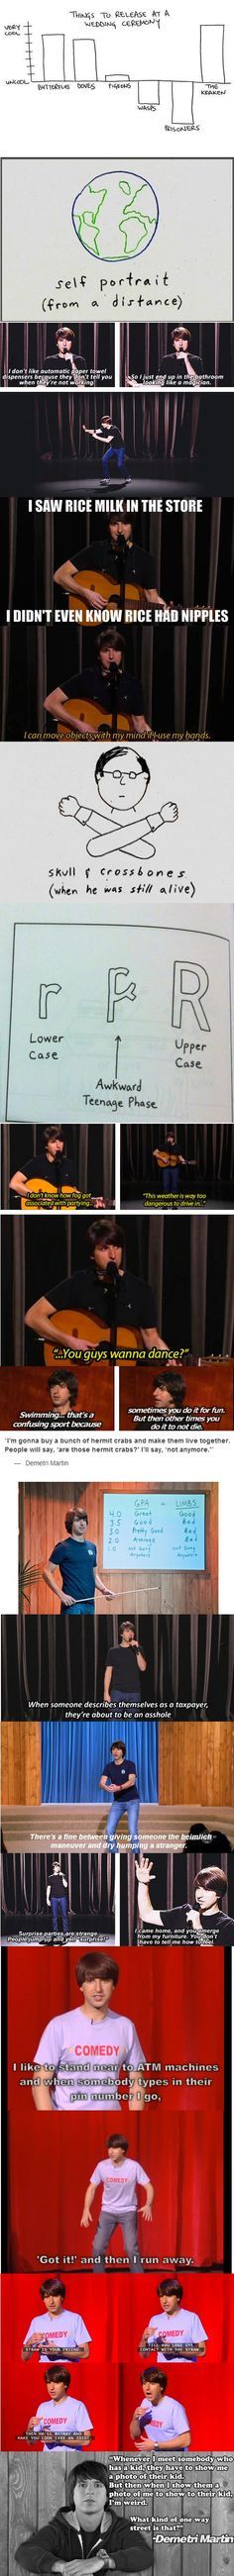 Demetri Martin - love this guy